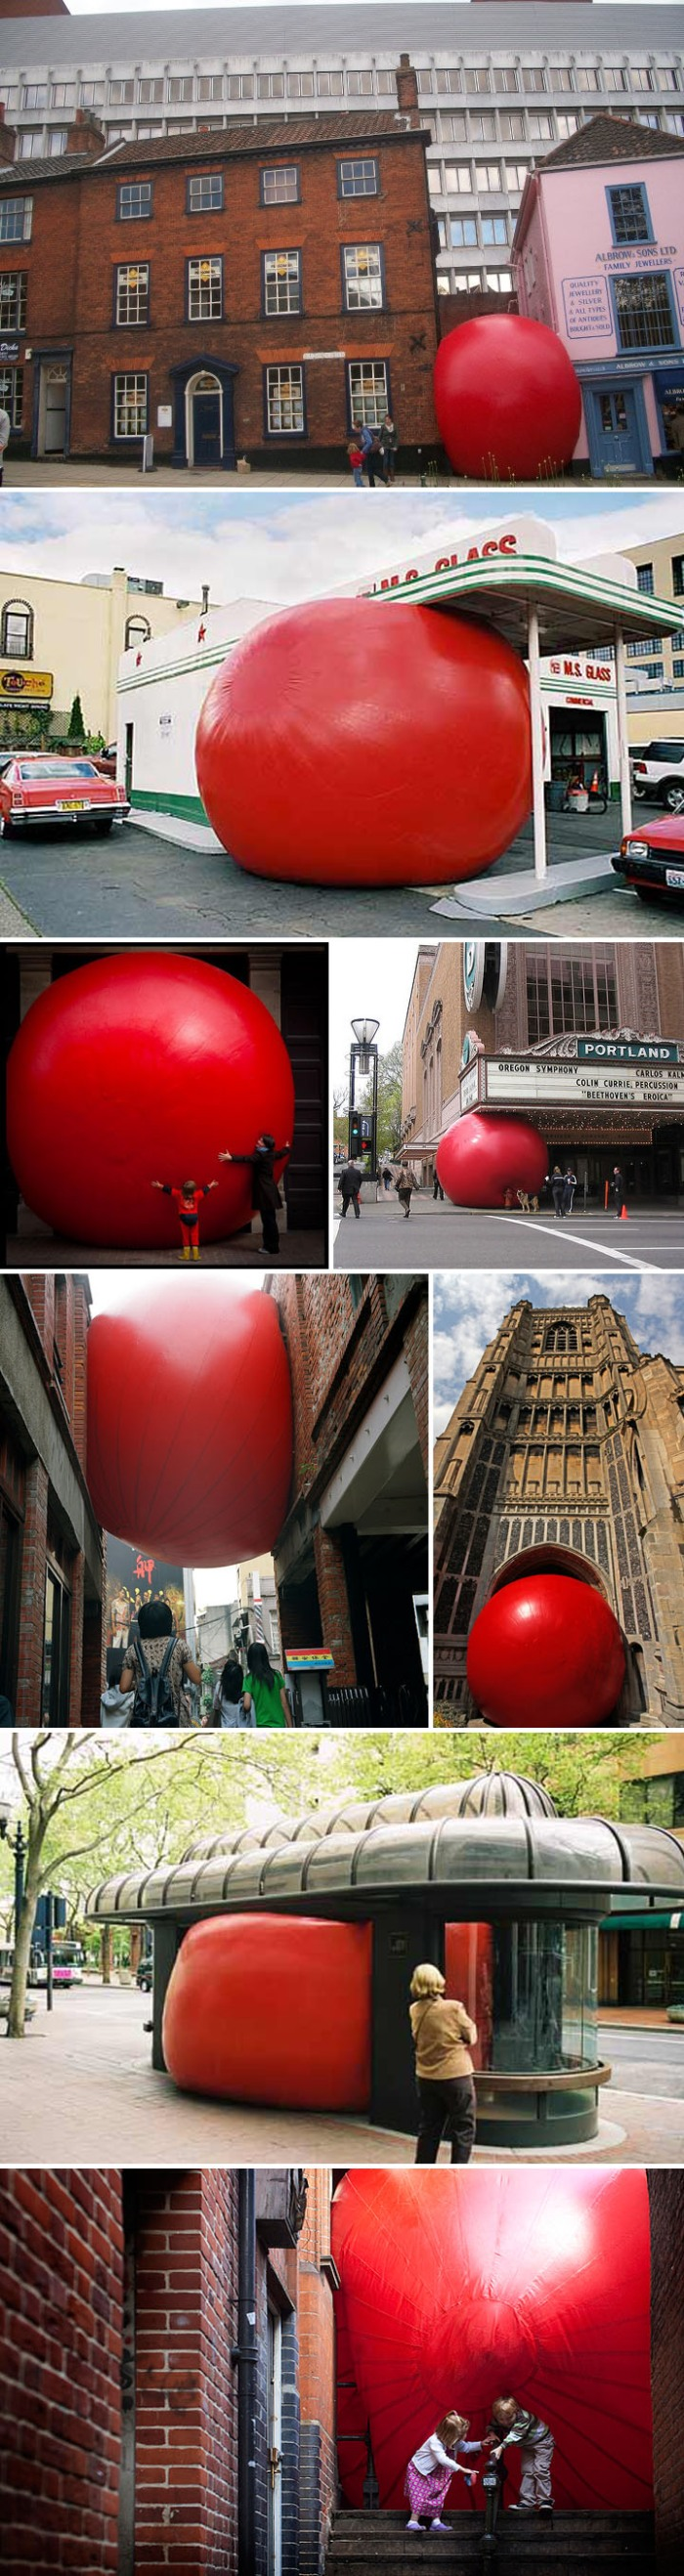 Interactive art, Large Red ball placed in different cities around the world, Fun art installation